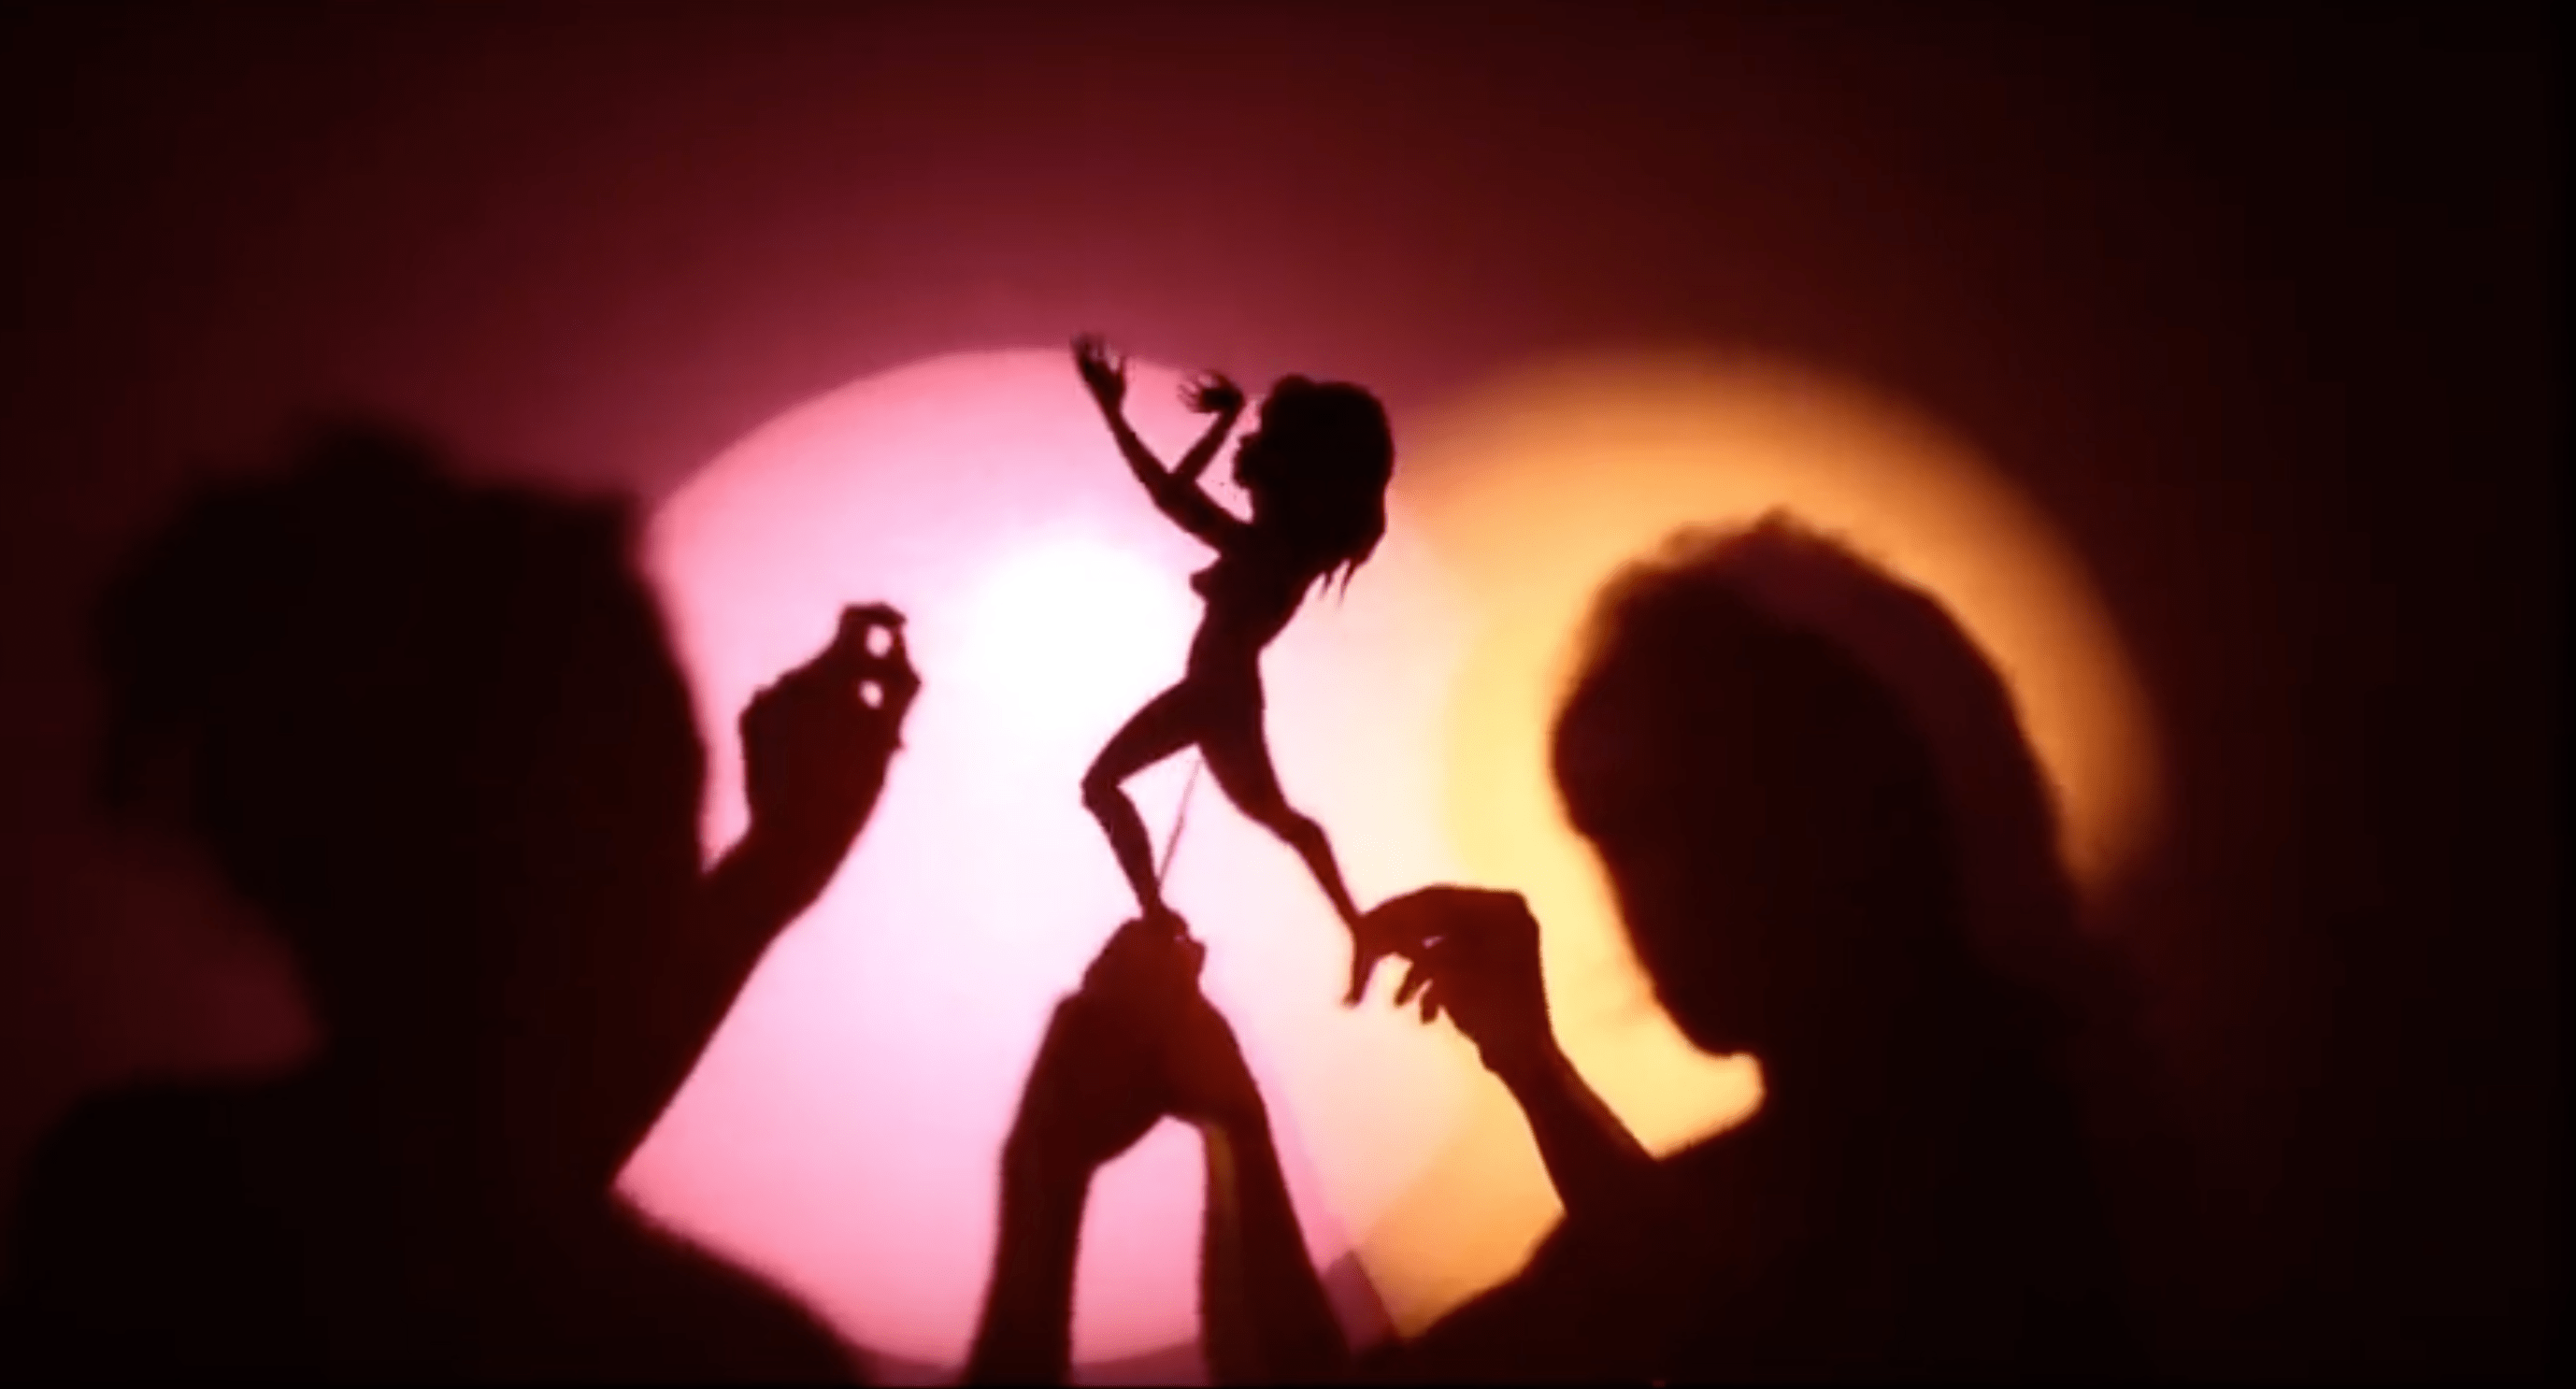 Santigold Banshee Video by Kara Walker and  Ari Marcopoulo